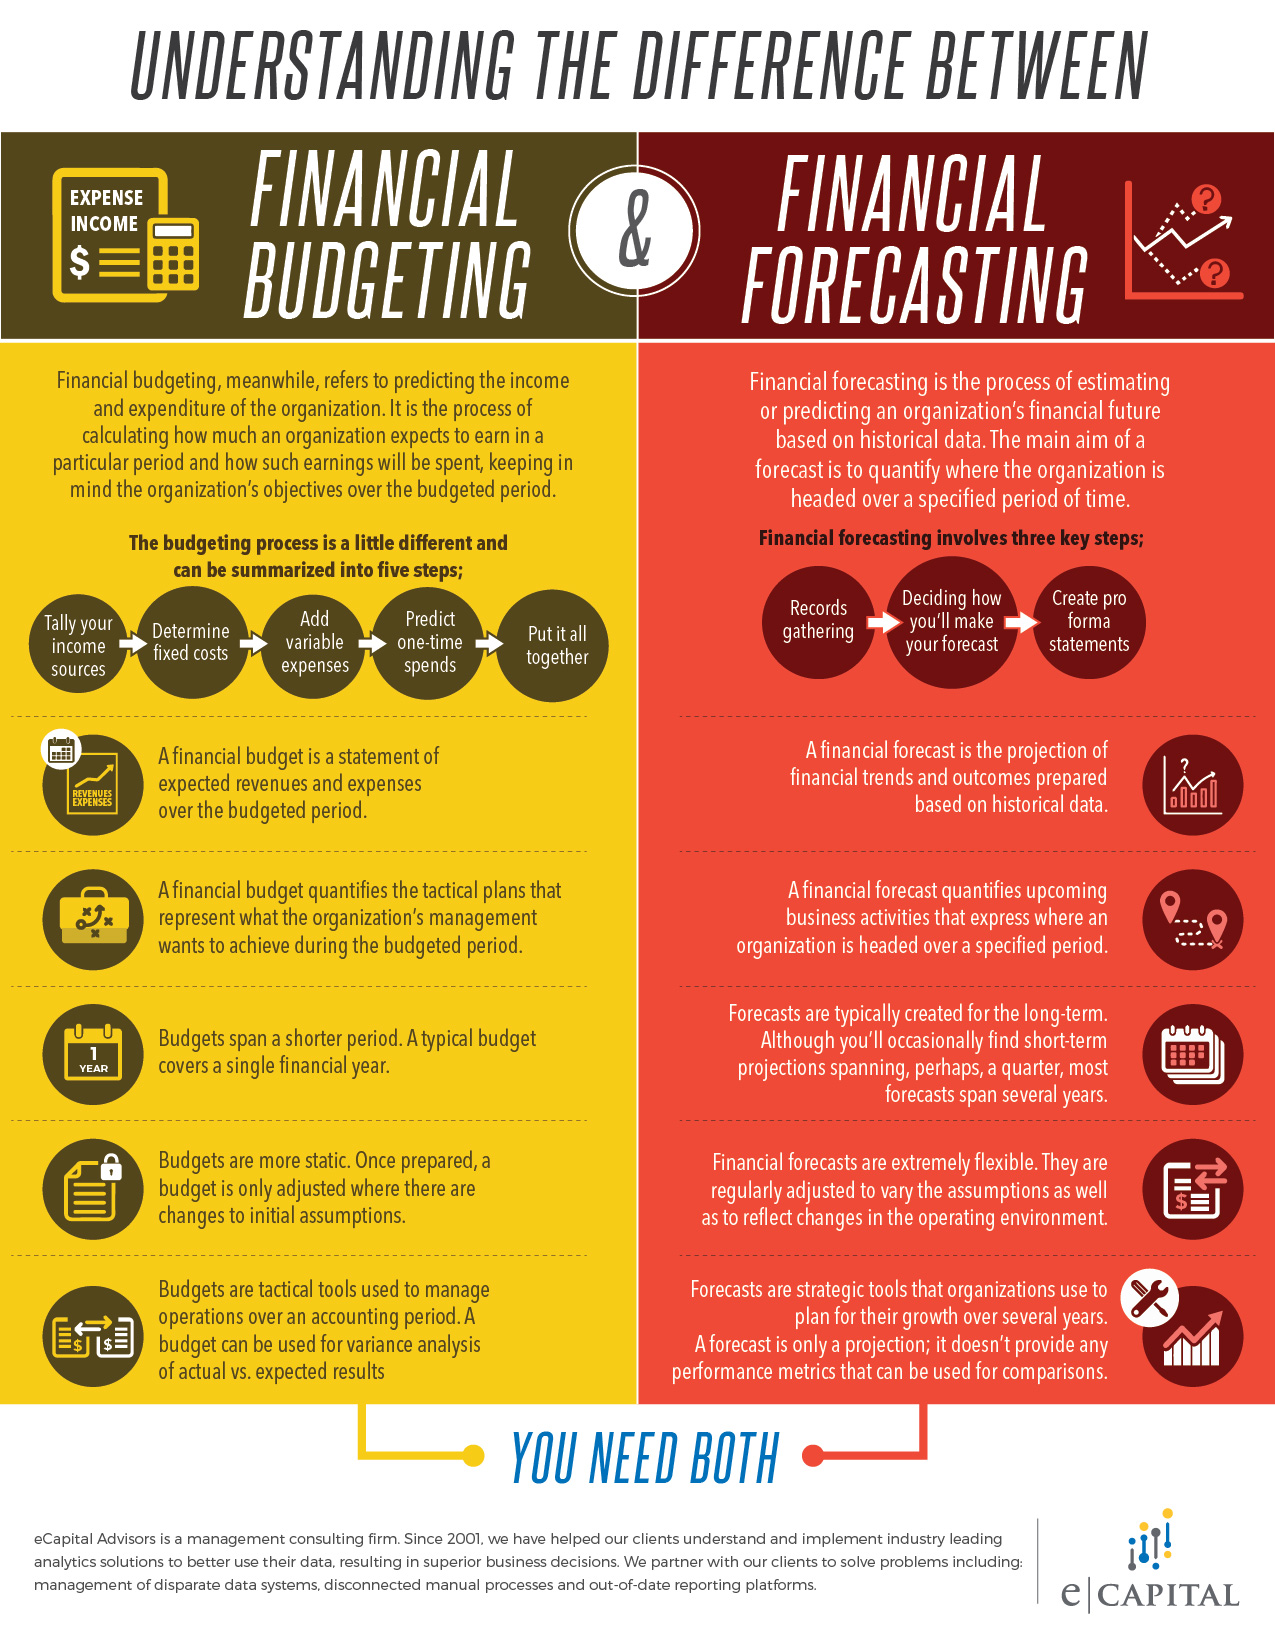 Difference Between Financial Budgeting and Financial Forecasting